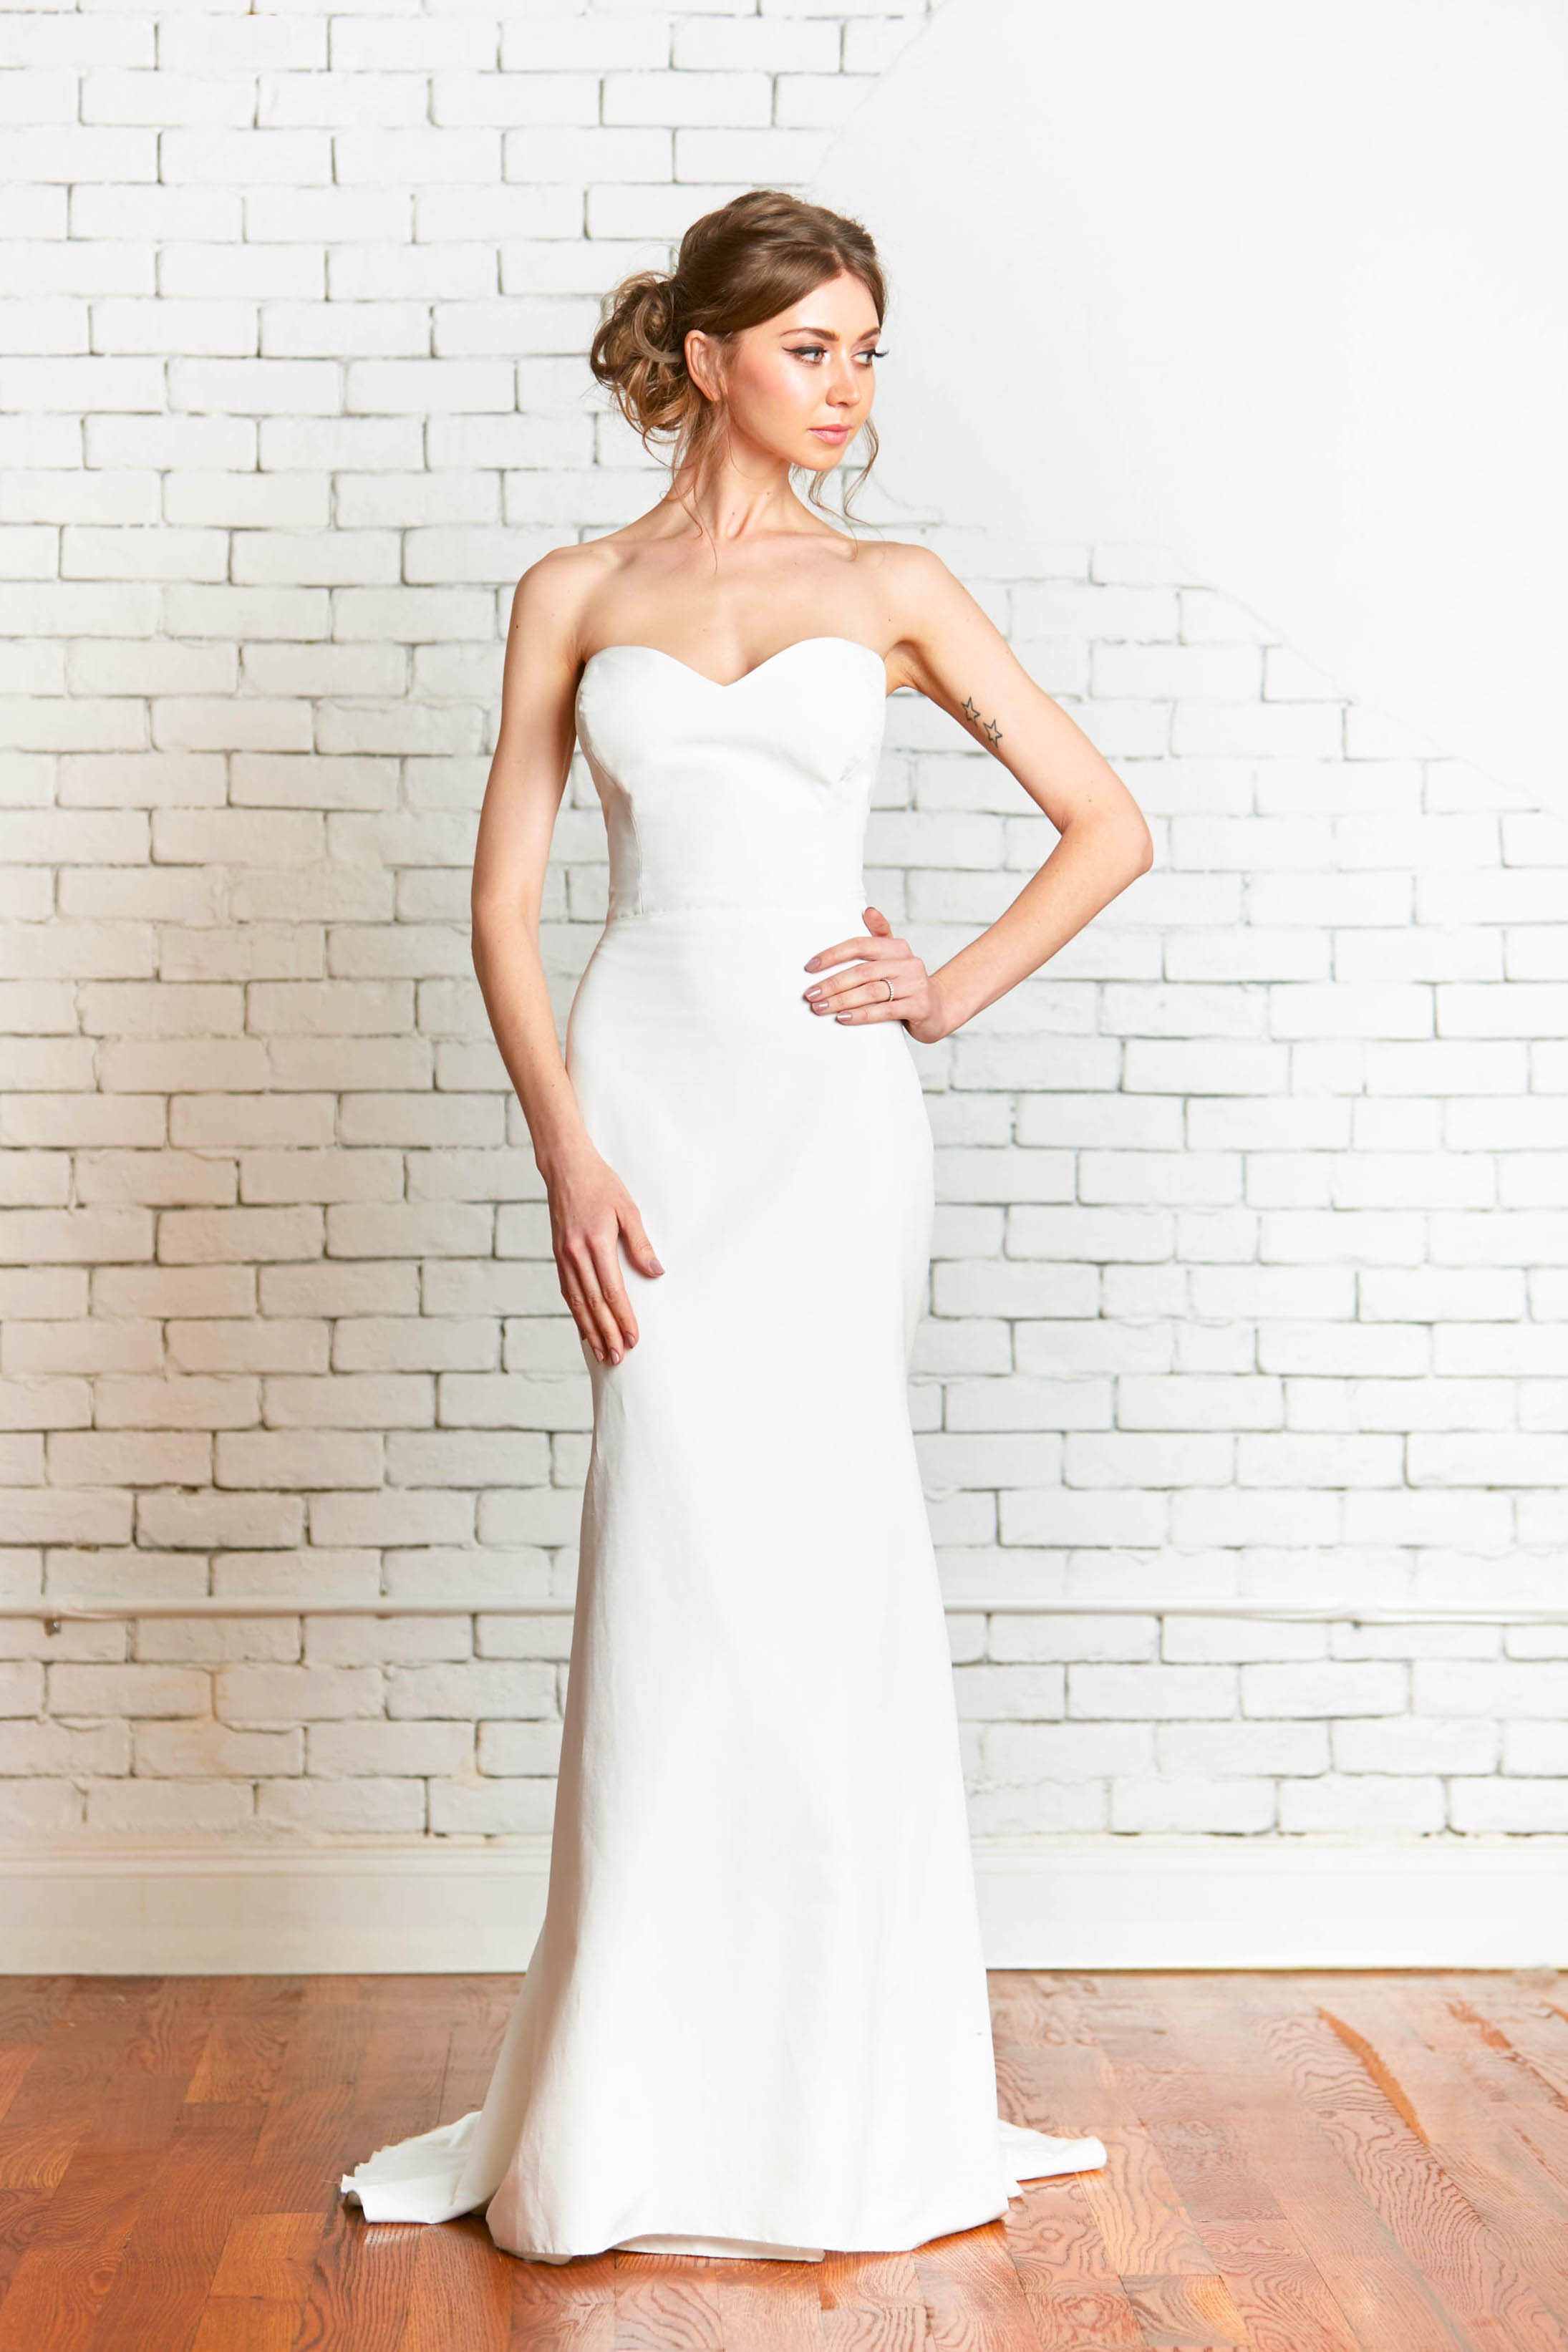 ElliotGown$-243.jpg